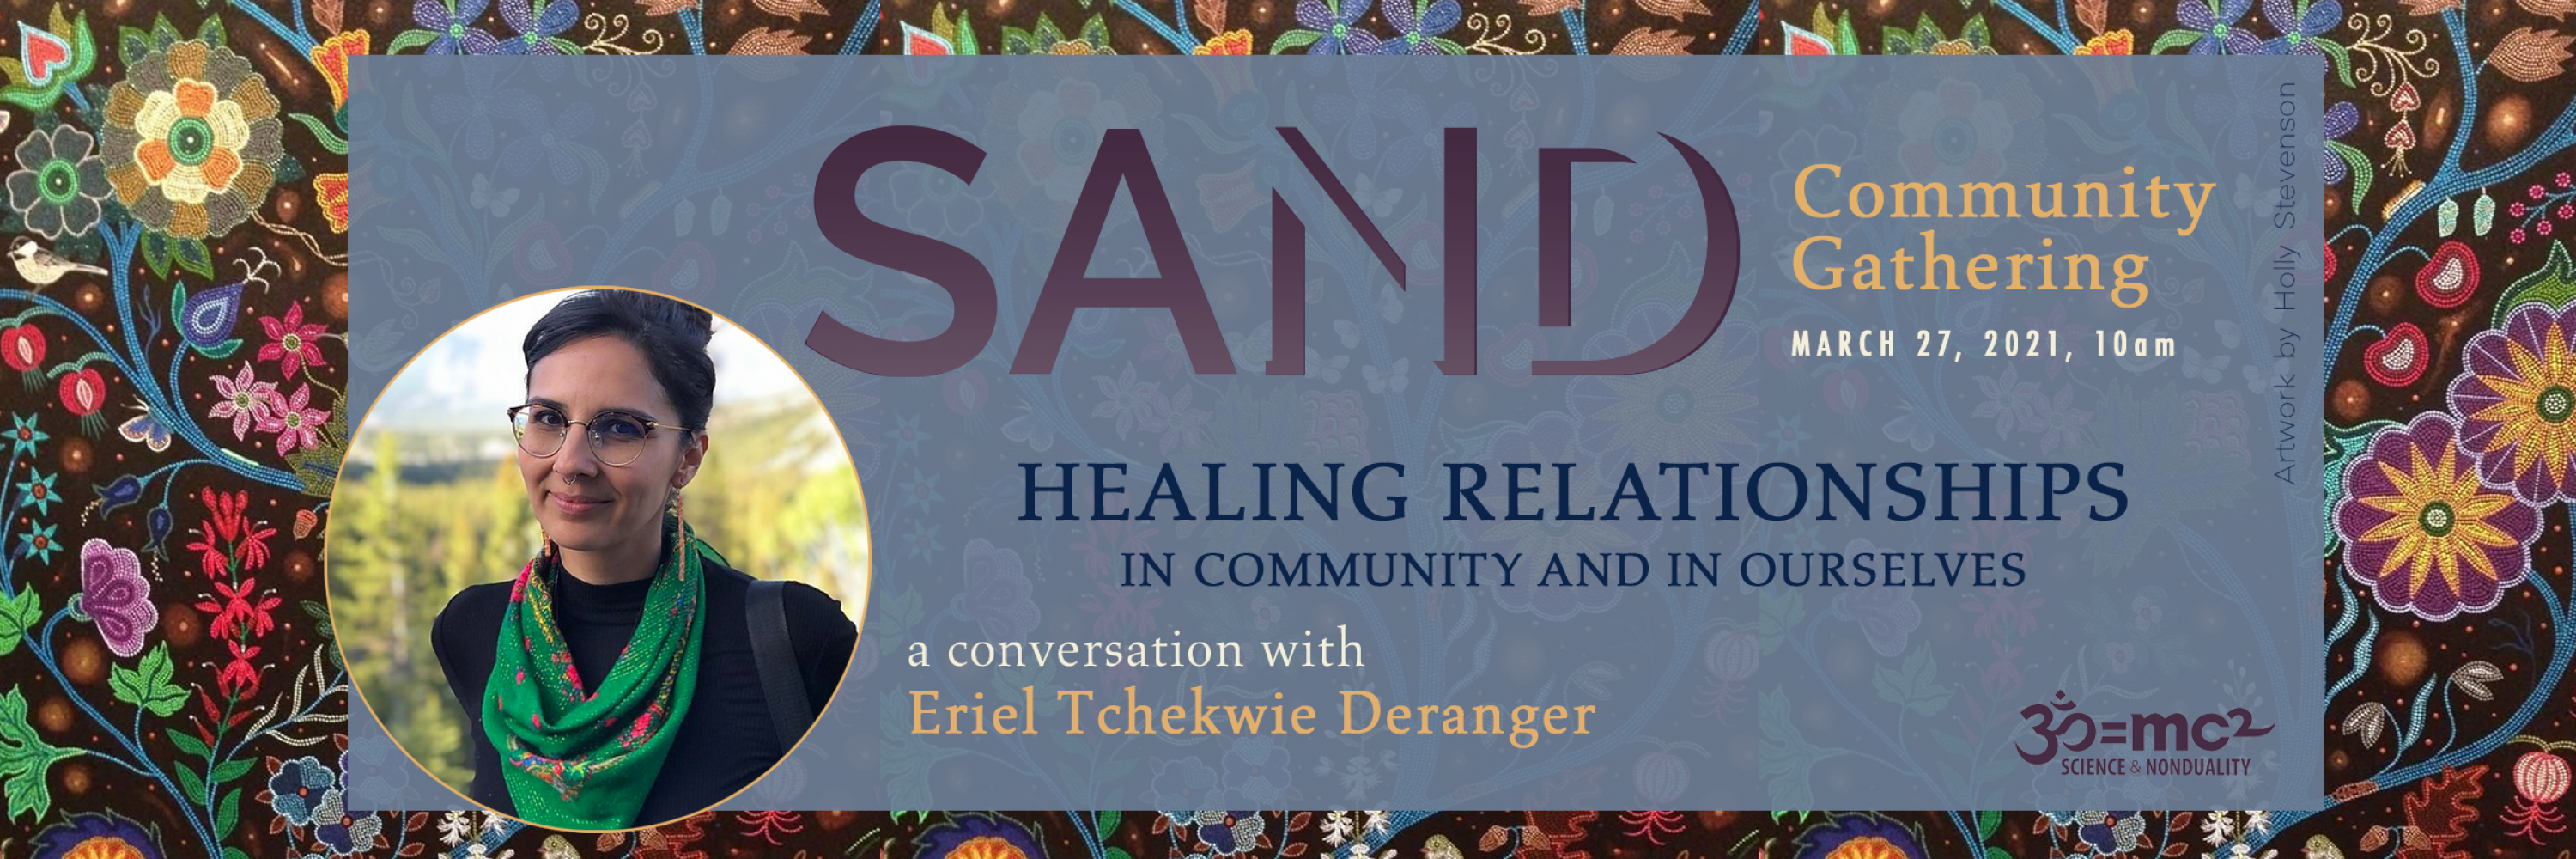 Healing Relationships in Community and in Ourselves